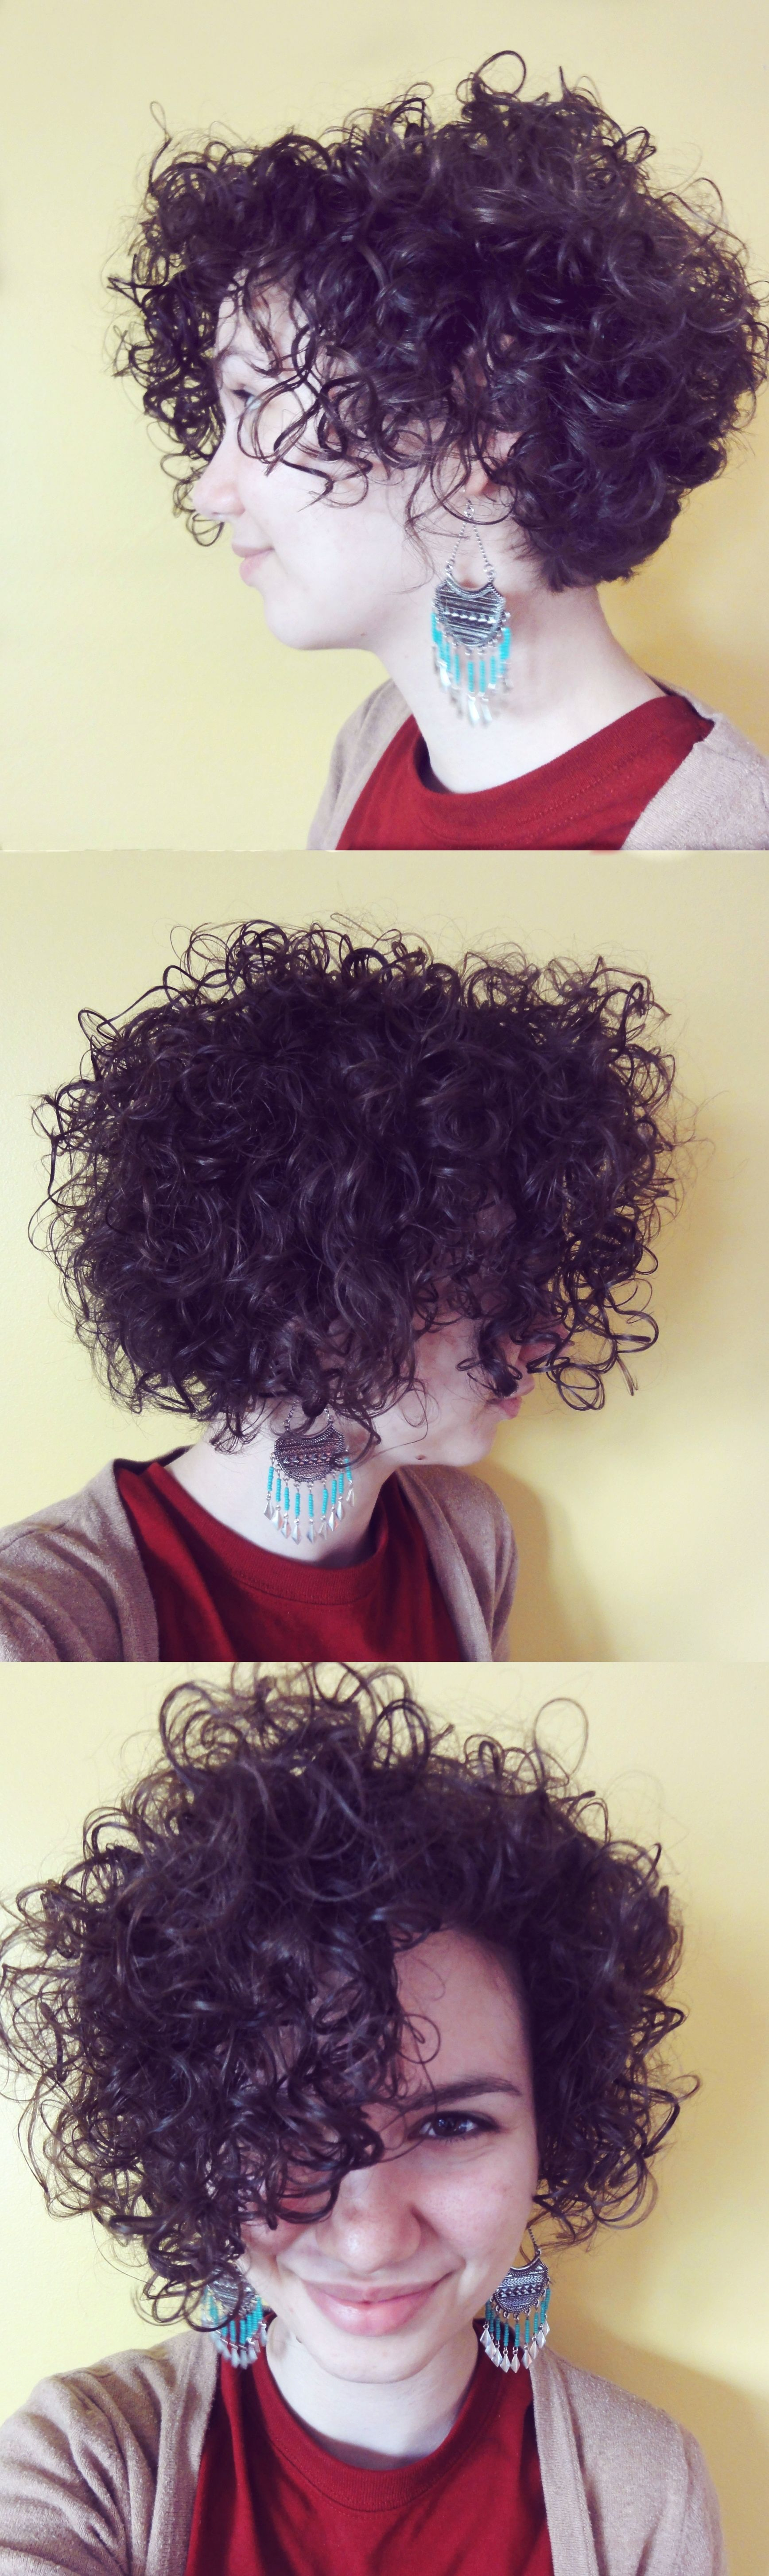 Short and curly inverted bob cut to appear